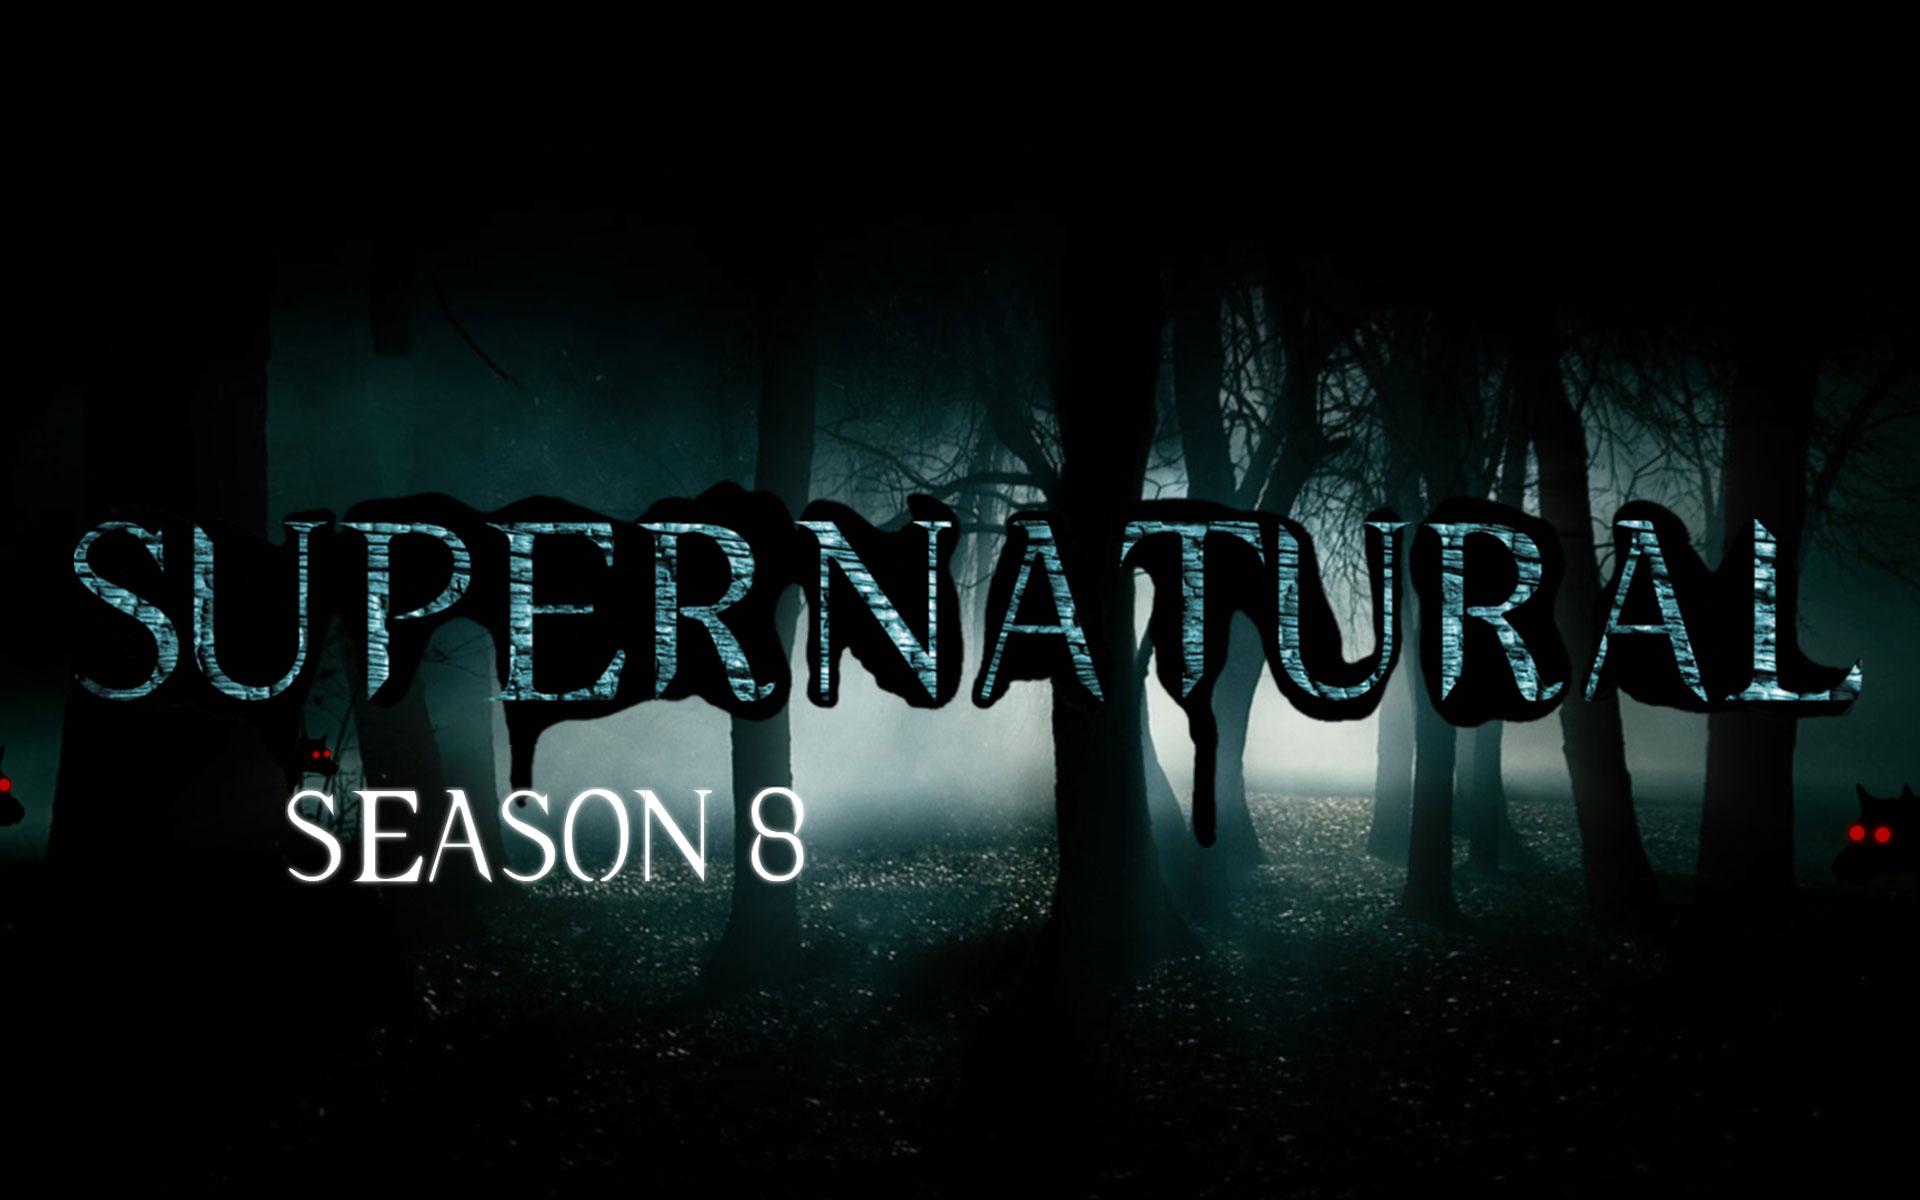 Supernatural season 8 will premiere on Wednesday October 3rd at 9/8C.